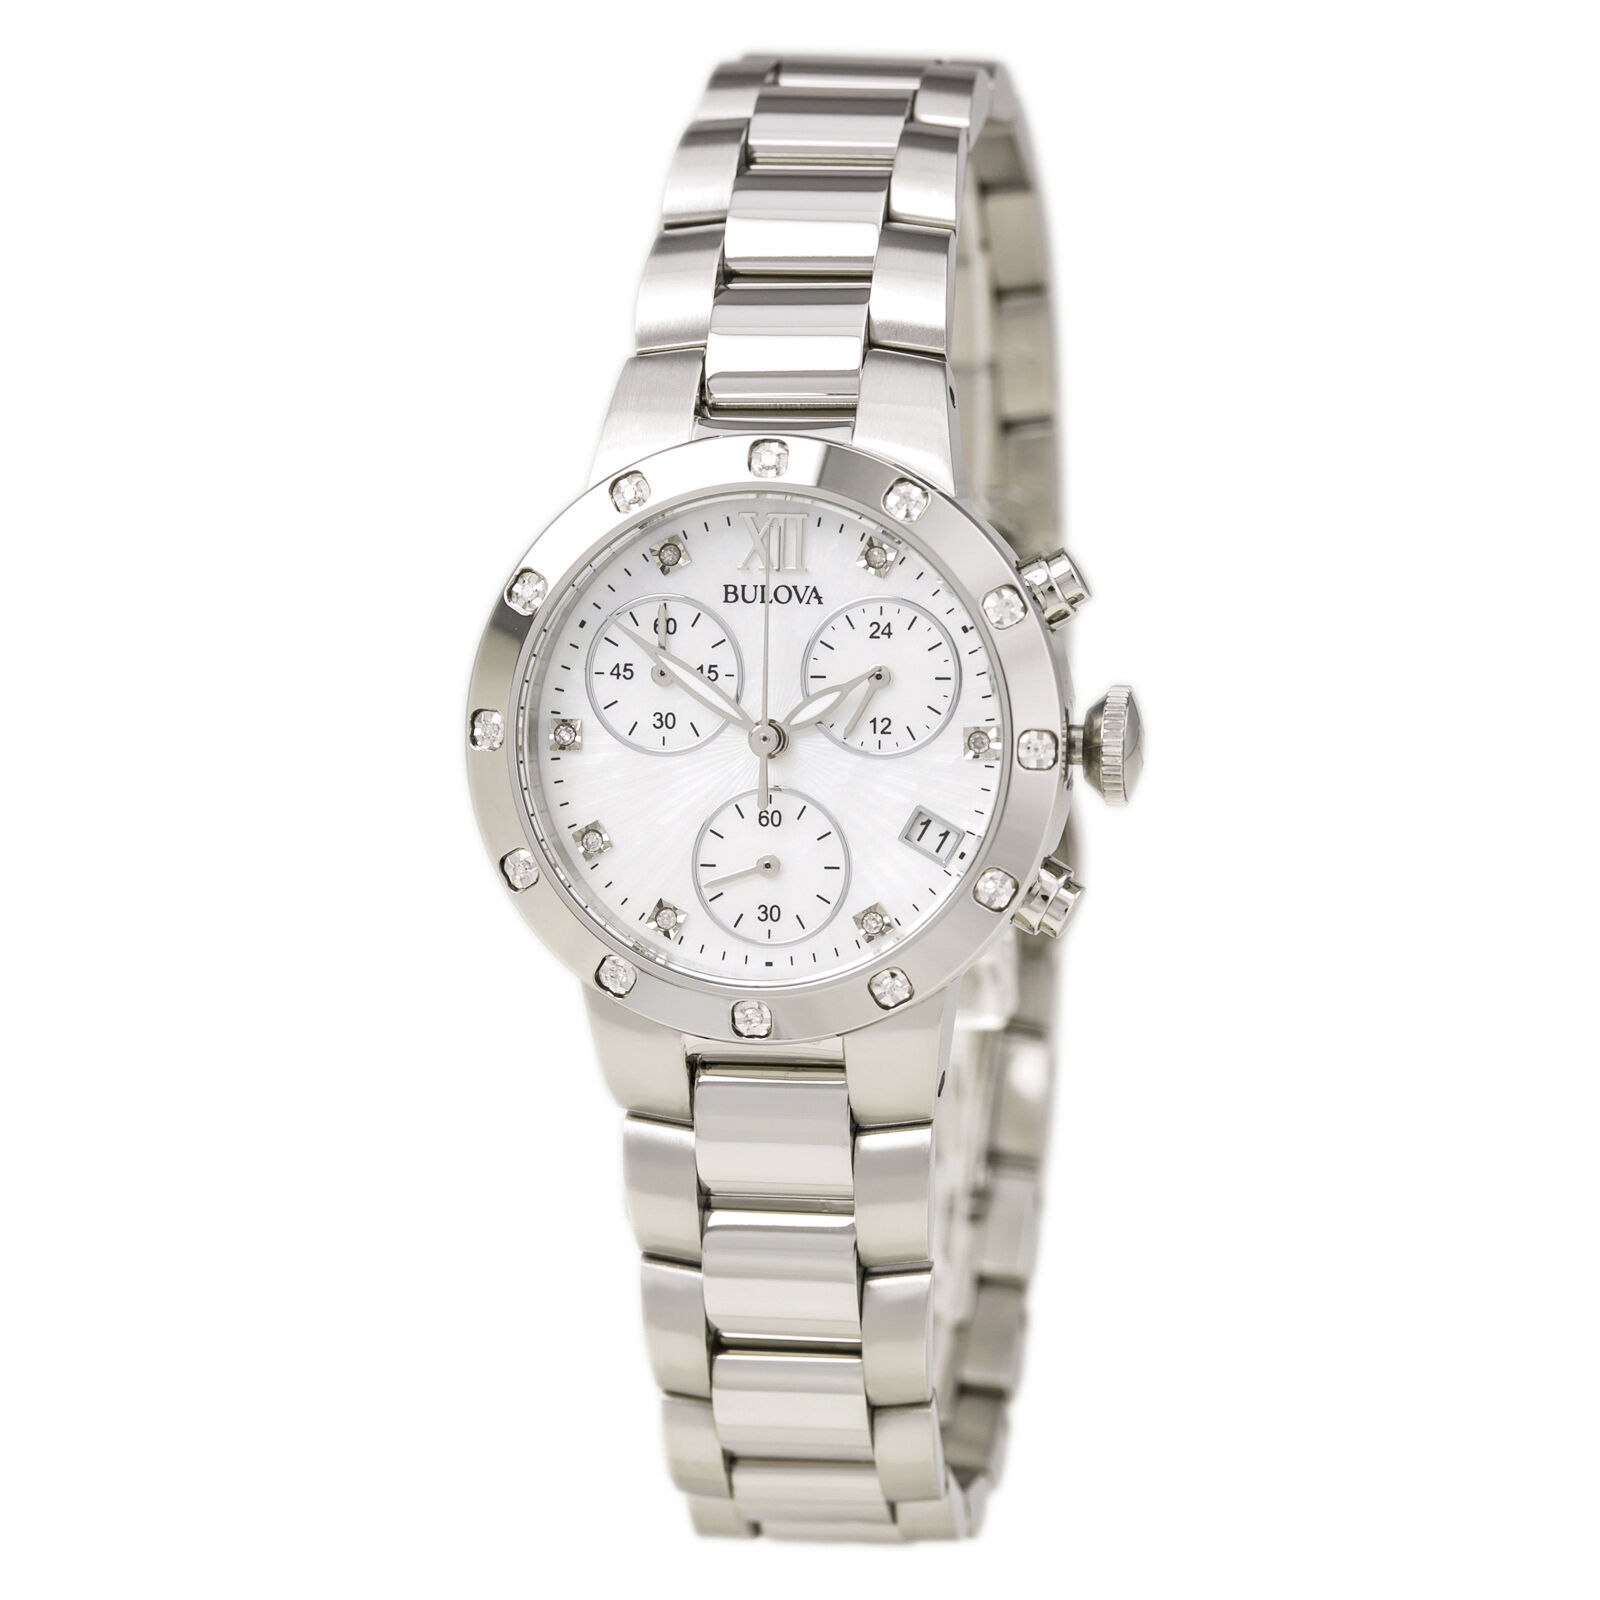 Bulova women 39 s 96r202 diamond chronograph quartz mother of pearl dial watch ebay for Pearl watches